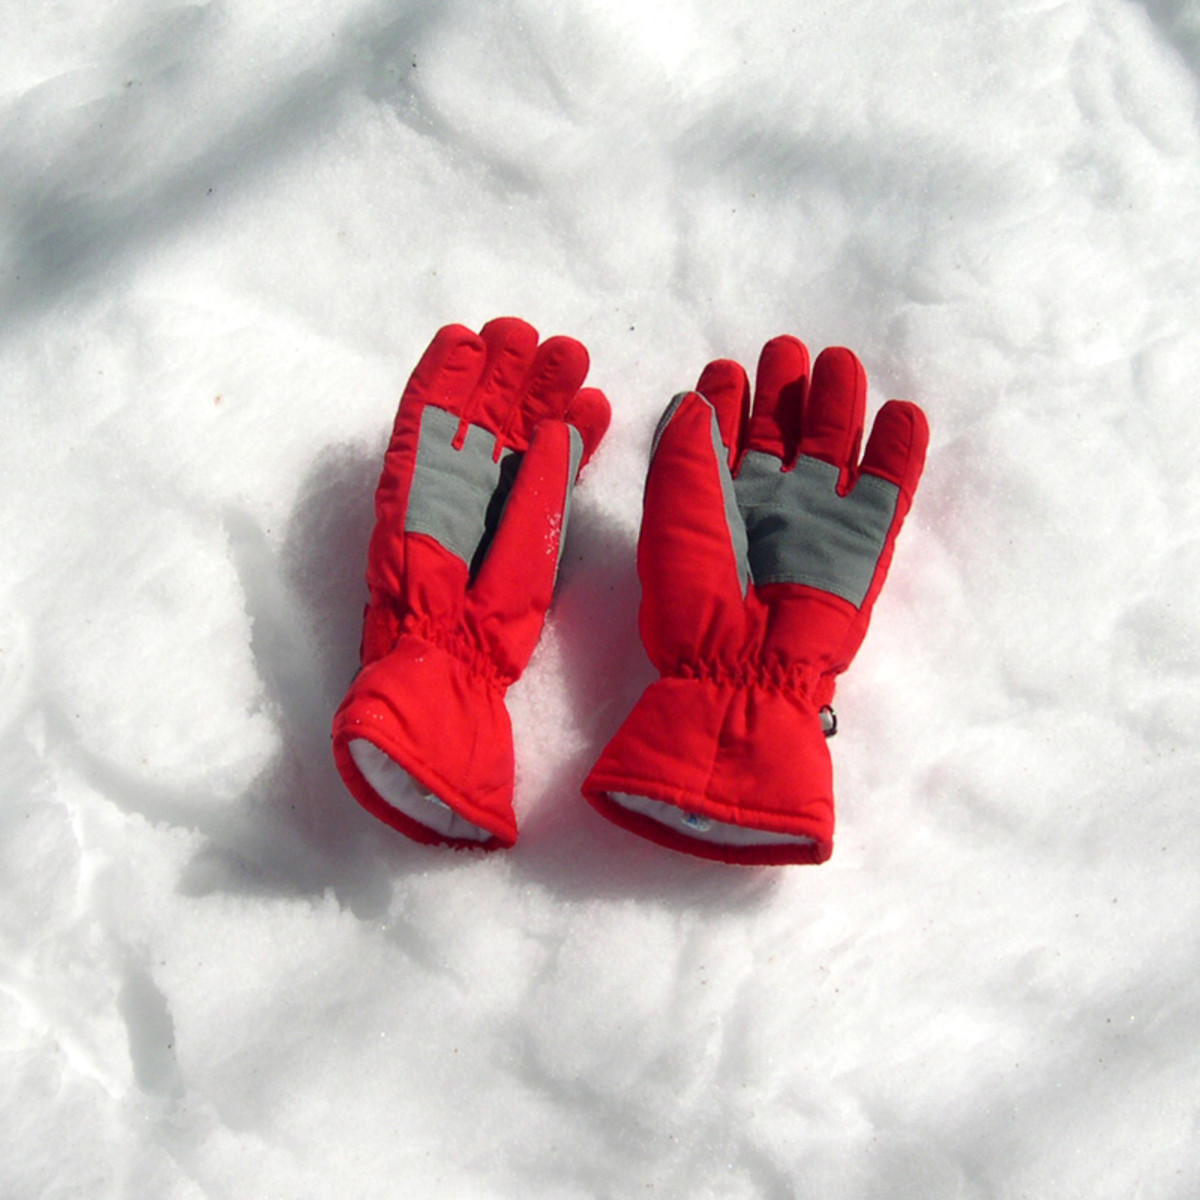 4 of the Best Heated Work Gloves - Battery Warmed Reviews for 2019